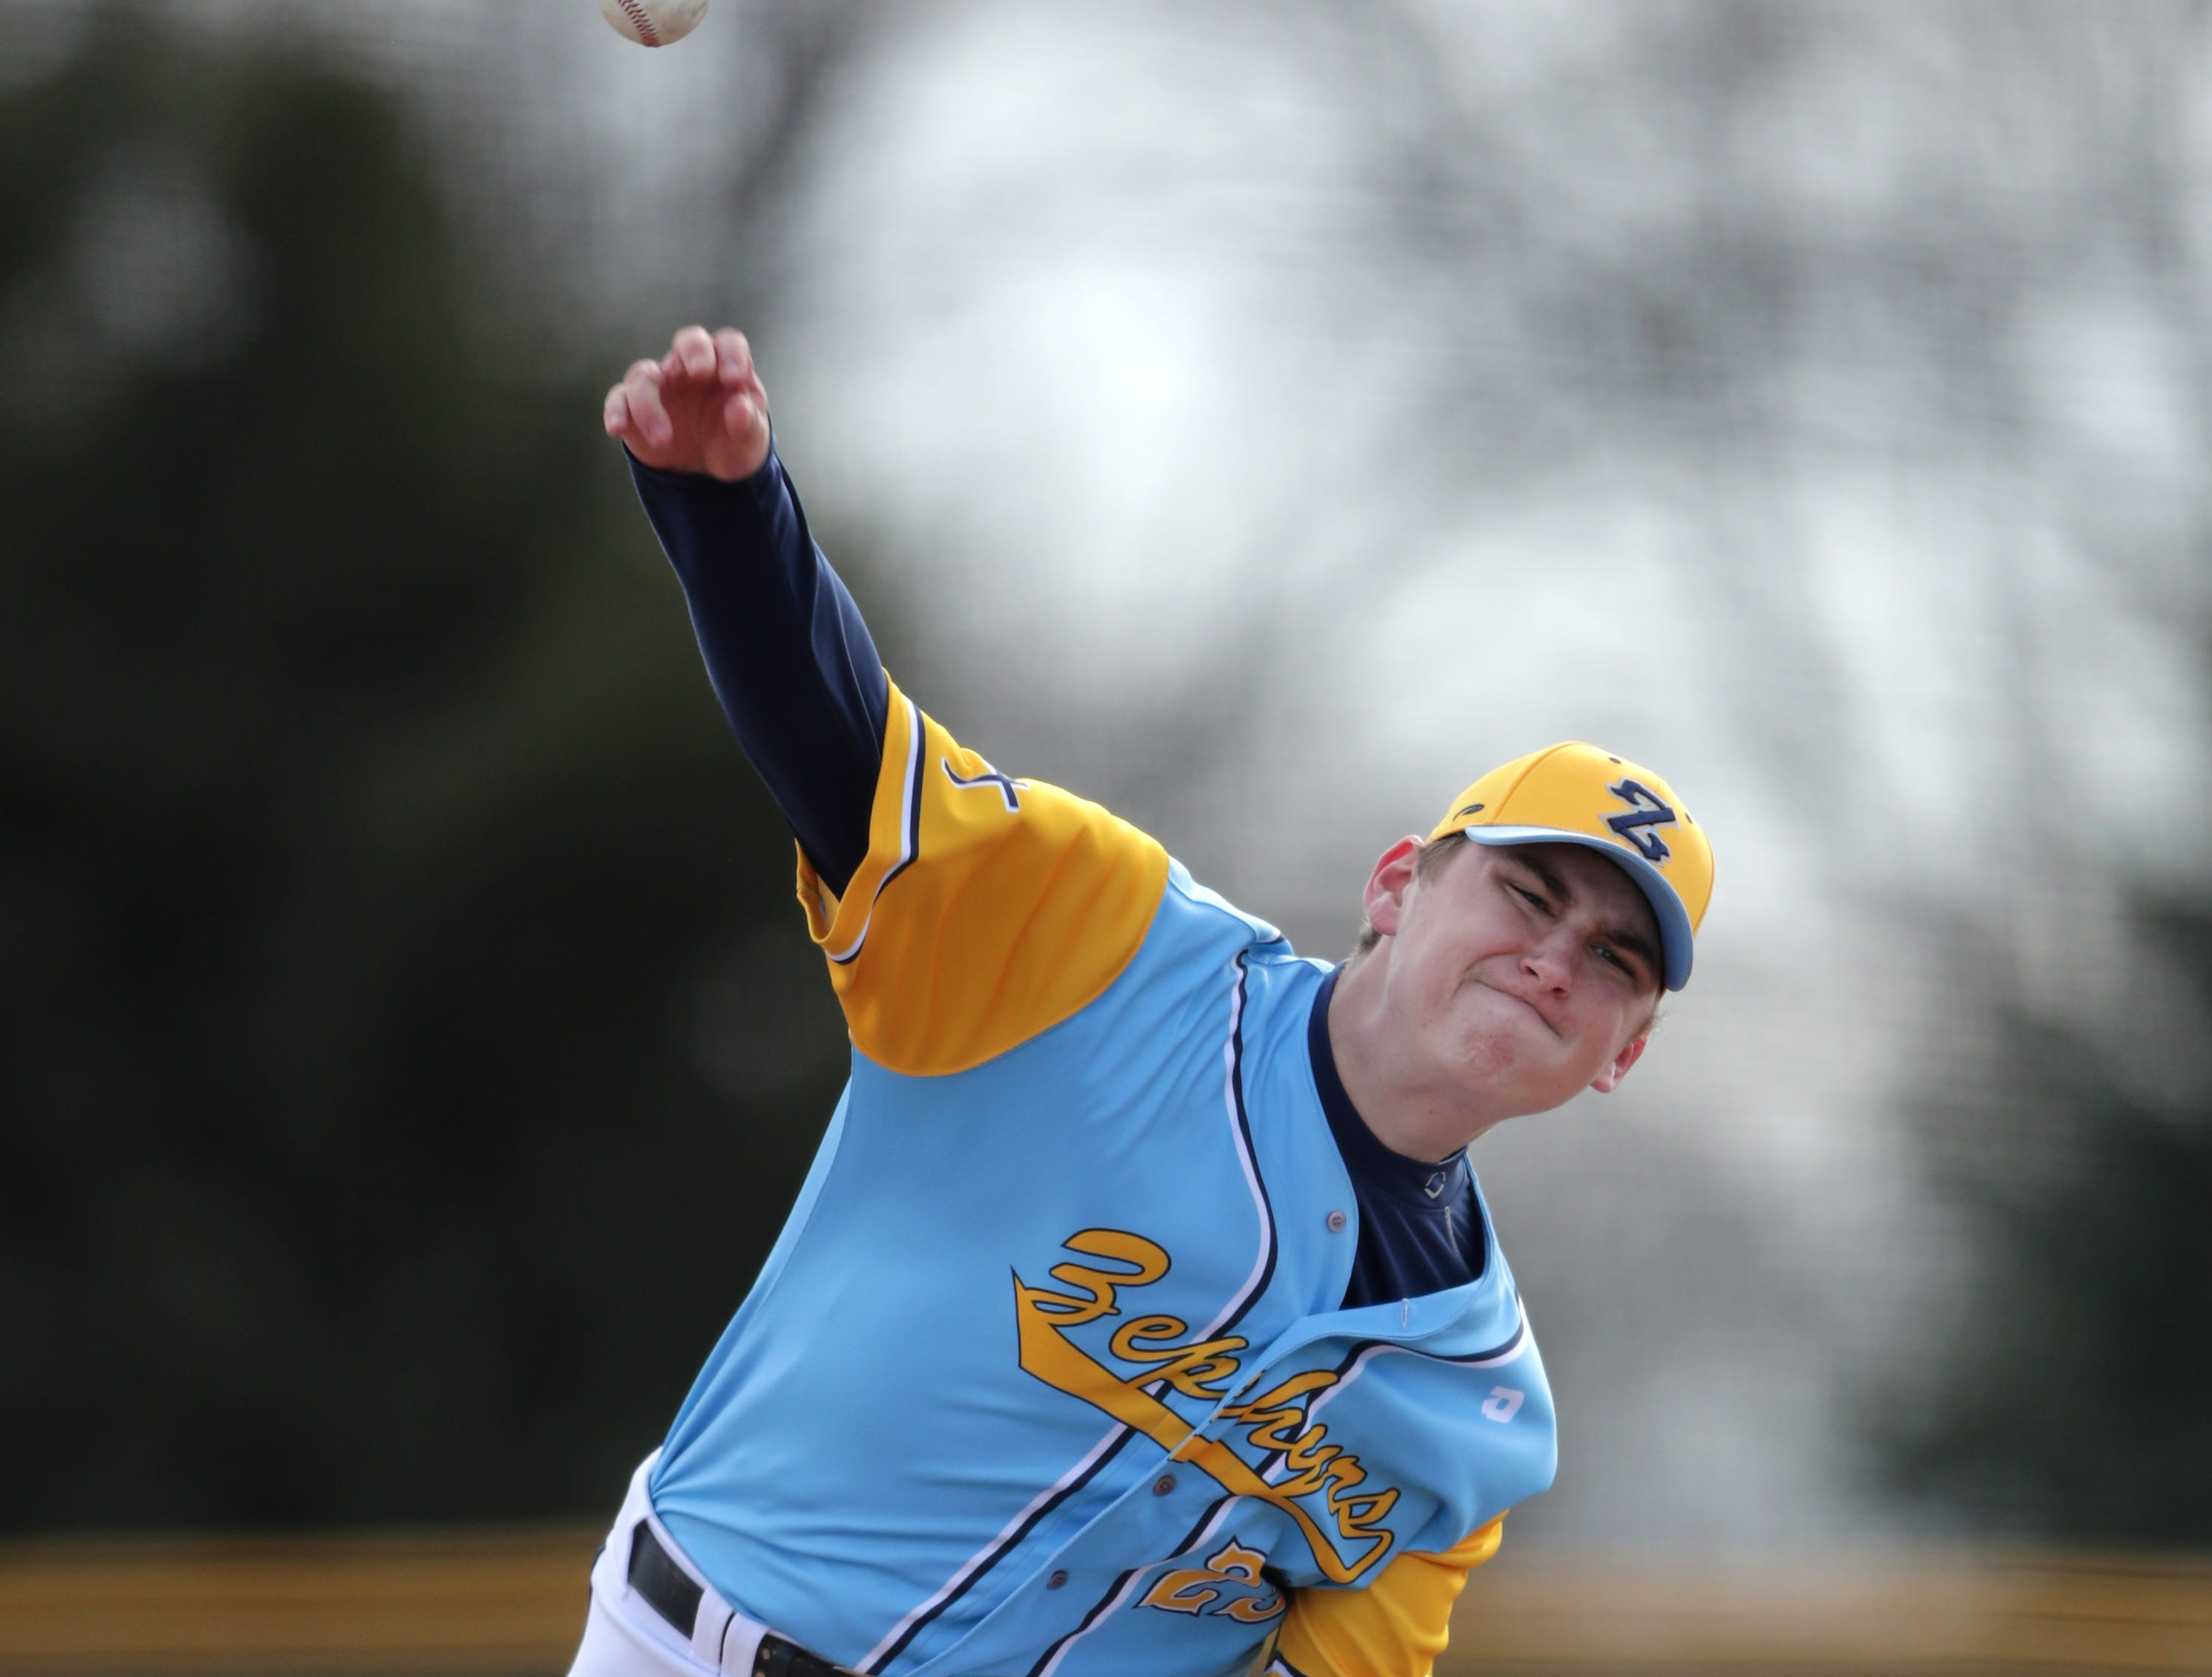 St. Mary Catholic High School's starting pitcher #23 Caden Uhlenbrauck delivers against Little Chute High School during their baseball game on Friday, March 29, 2019, in Neenah, Wis. Little Chute defeated St. Mary Catholic 2 to 1.Wm. Glasheen/USA TODAY NETWORK-Wisconsin.